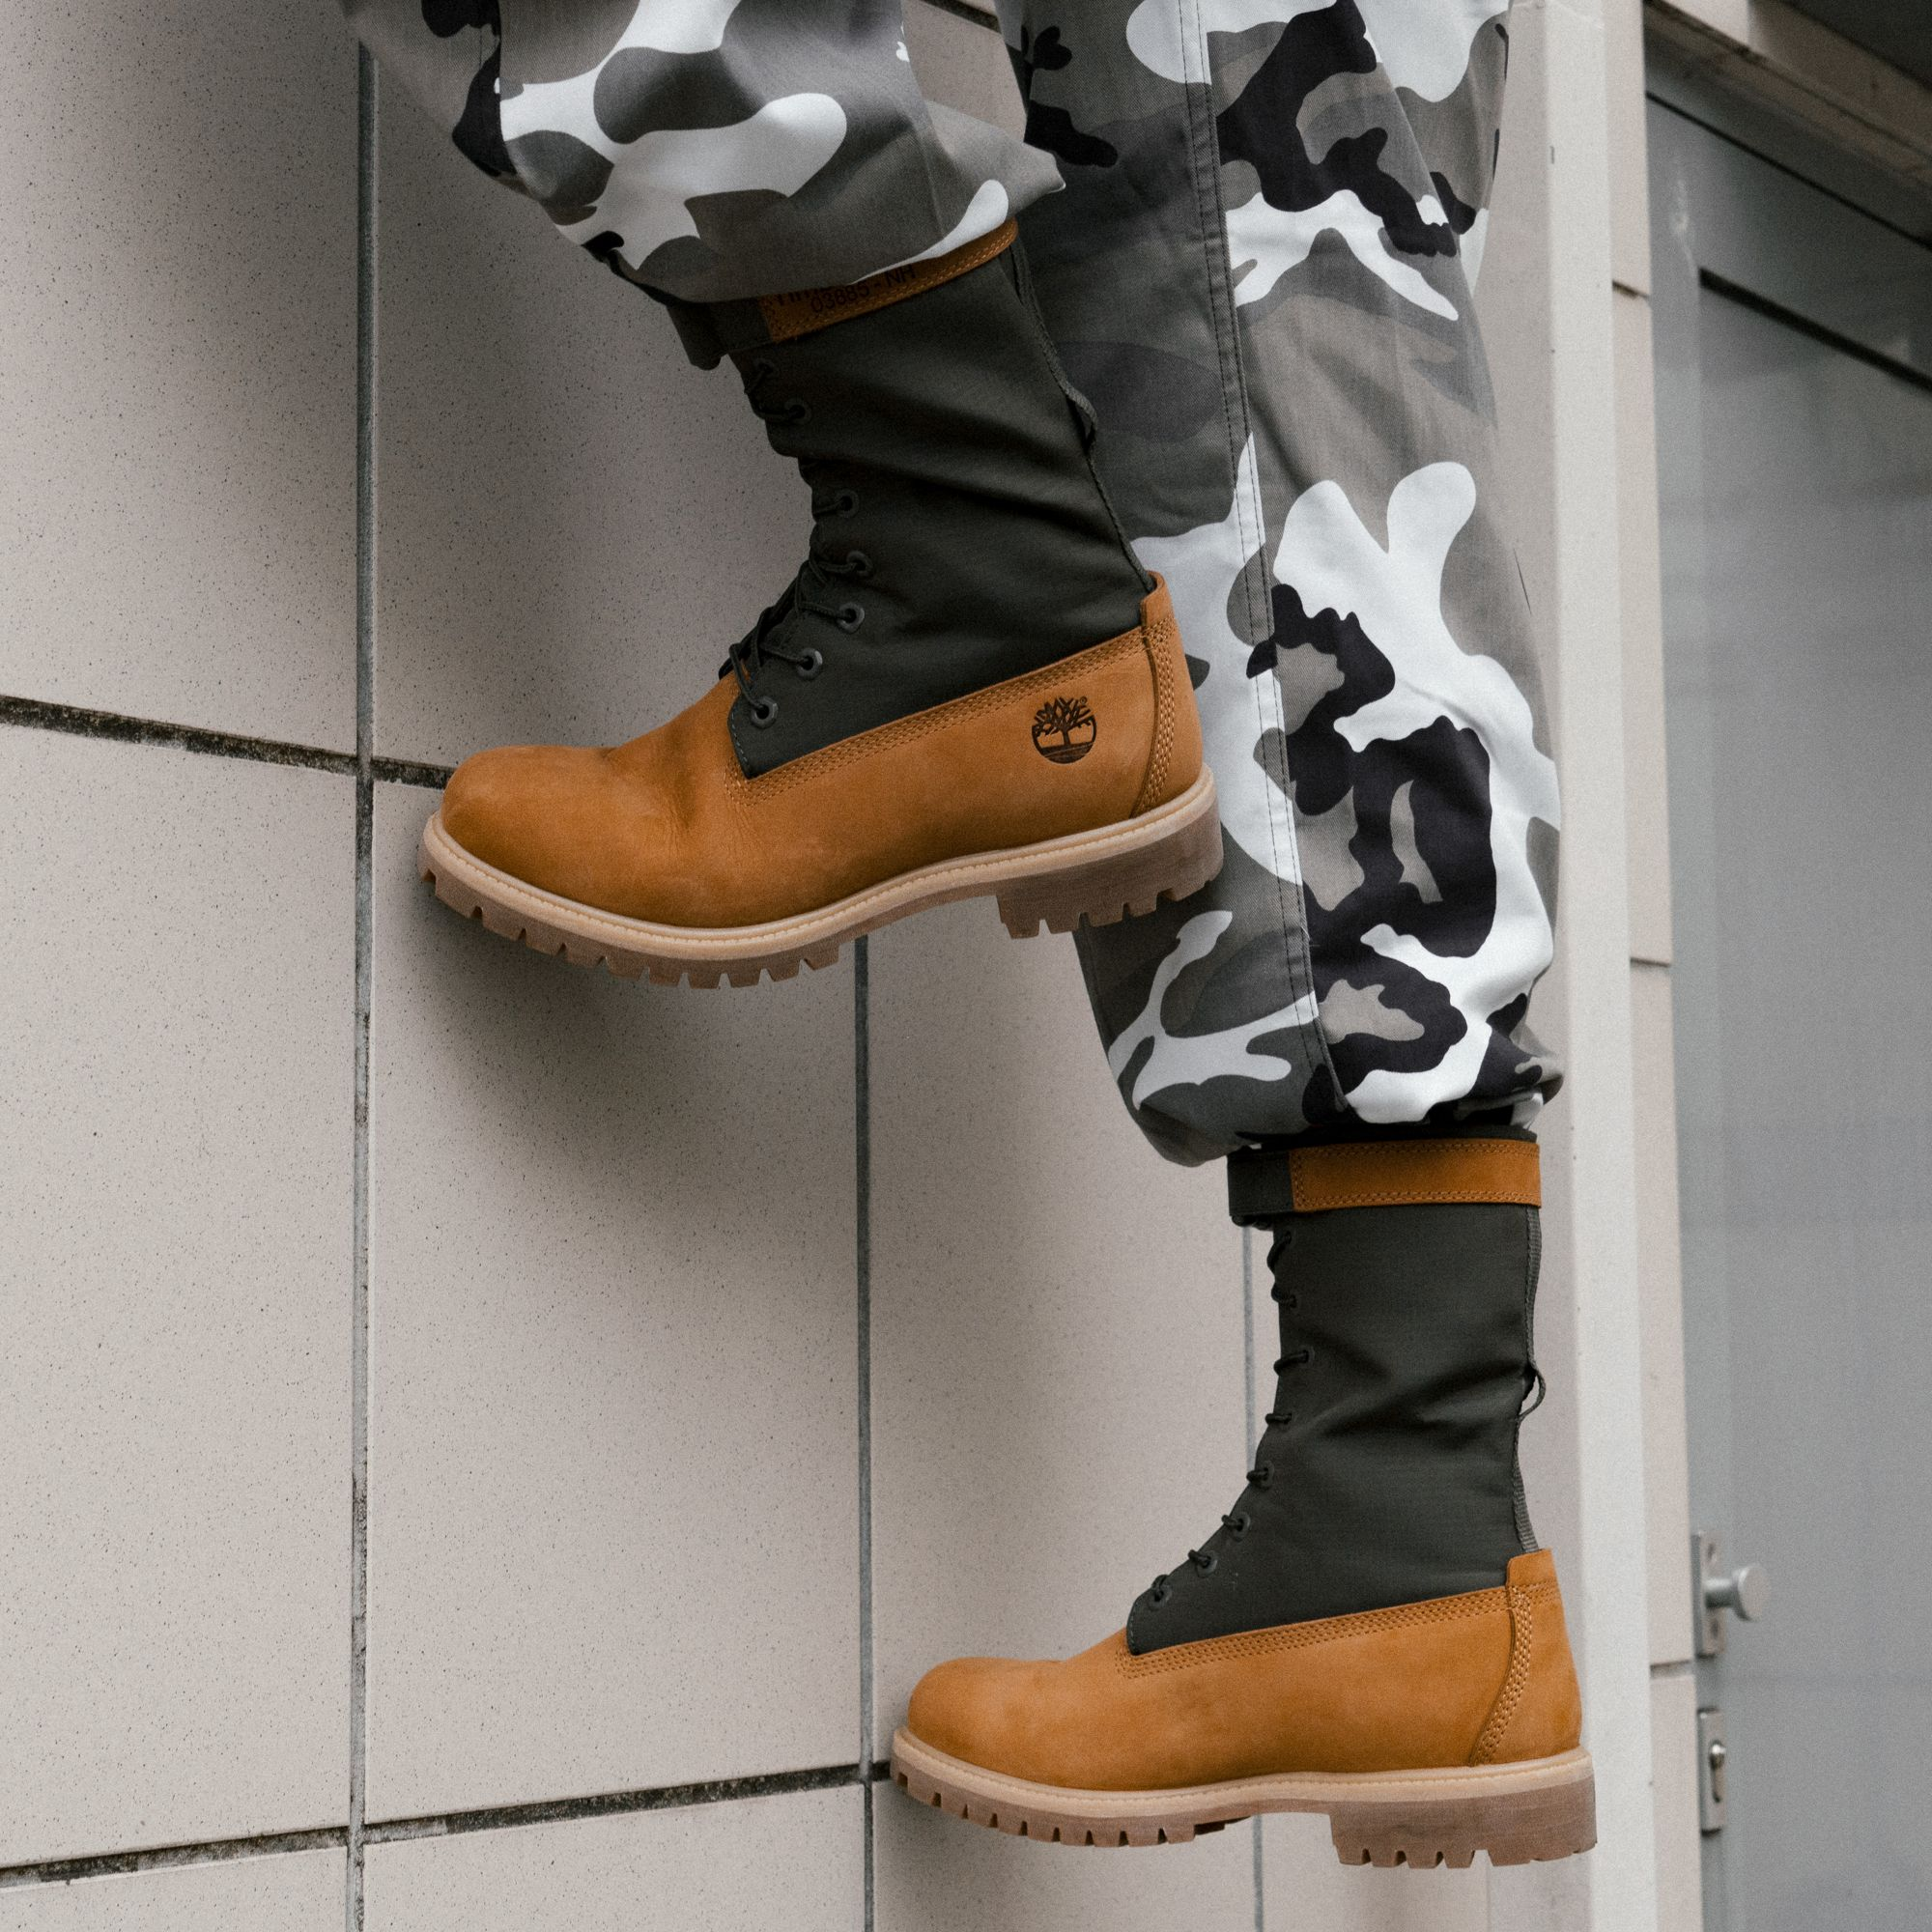 Timberland 6 Inch Gaiter Boot For Men In Yellowgrey At 165 Love